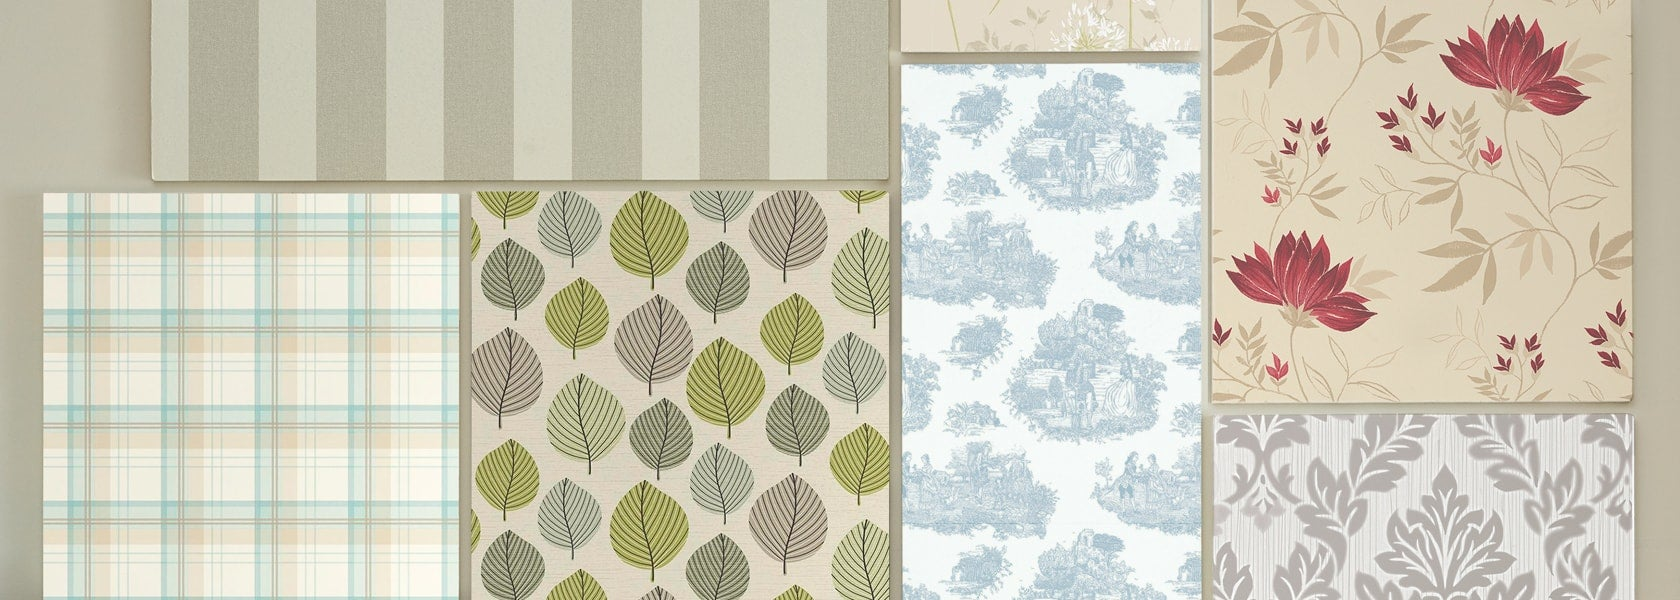 Wallpaper Buying Guide | Dunelm